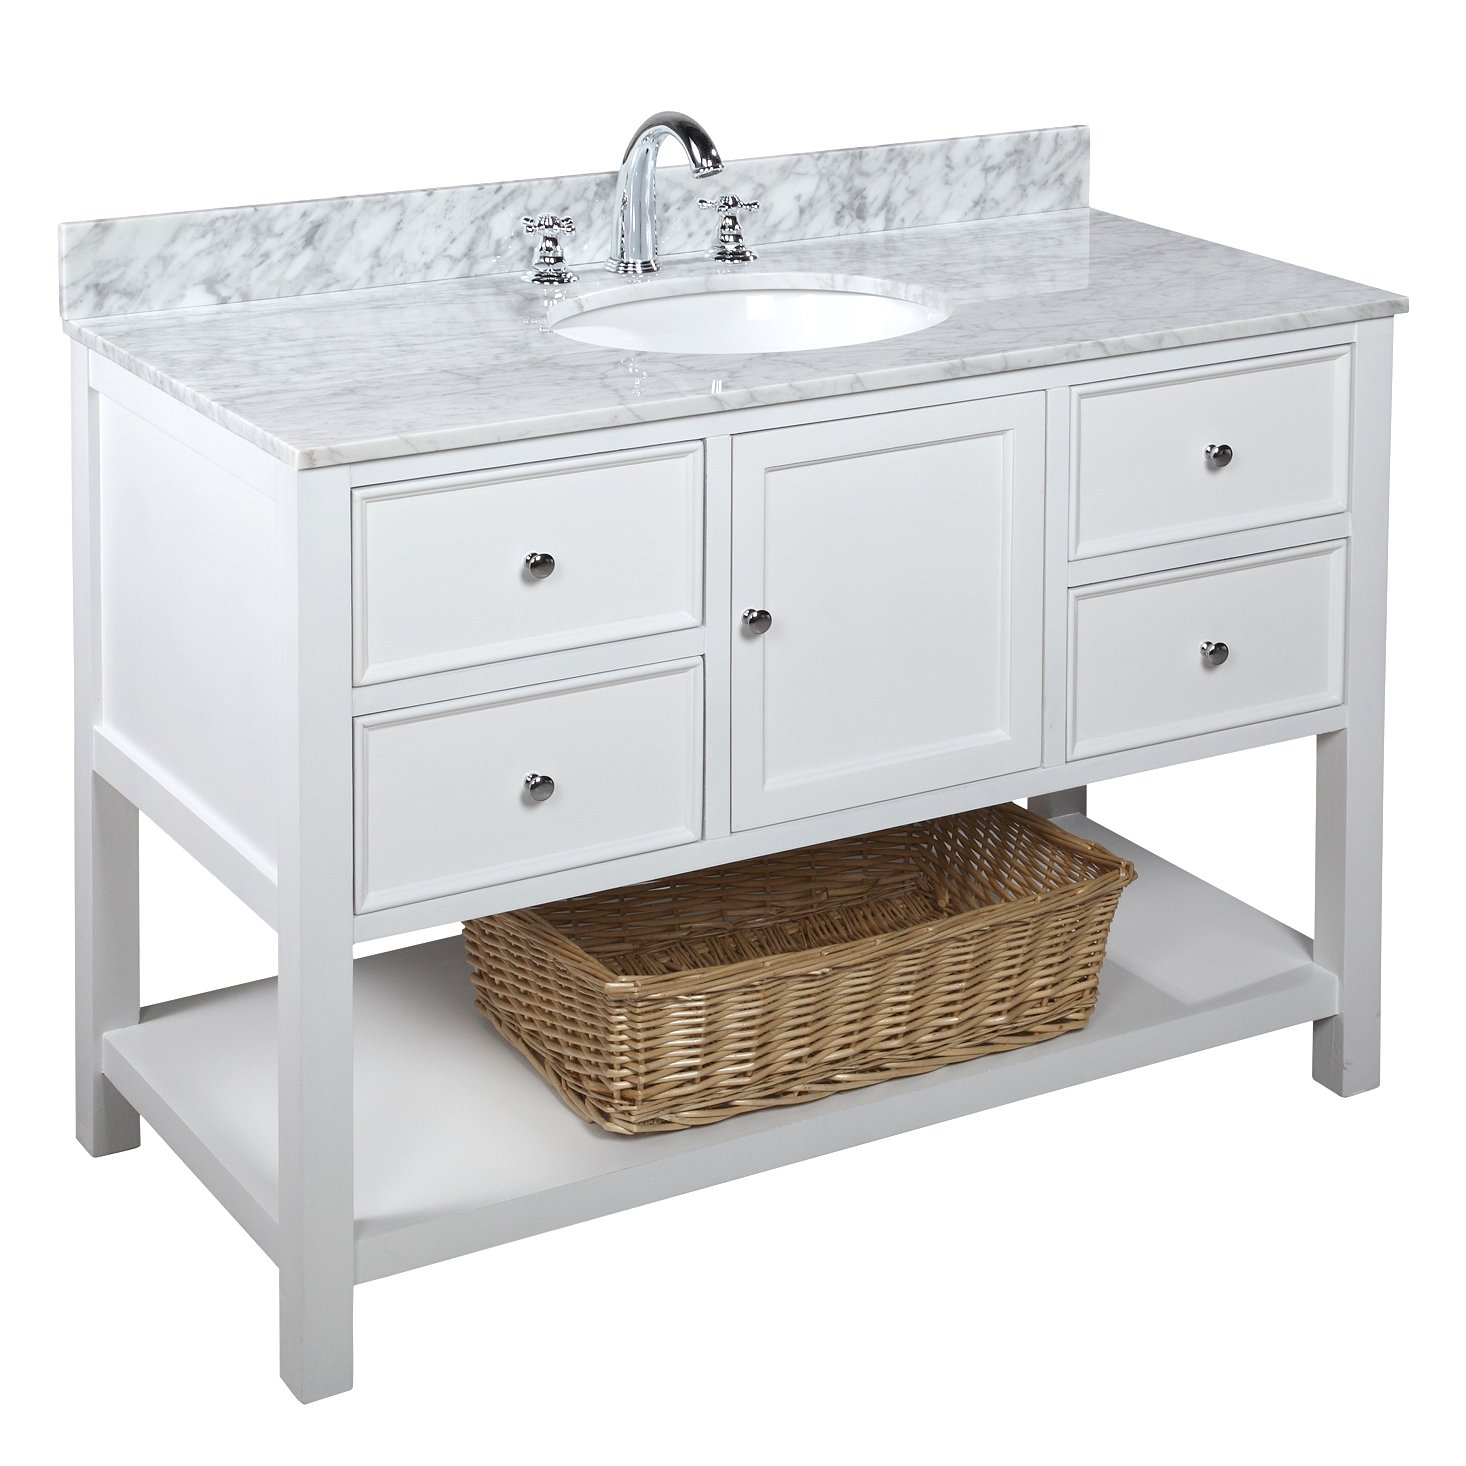 single drawers doors morenobath bathroom dp kitchen dolce free standing vanity drawer home amazon in with com sink